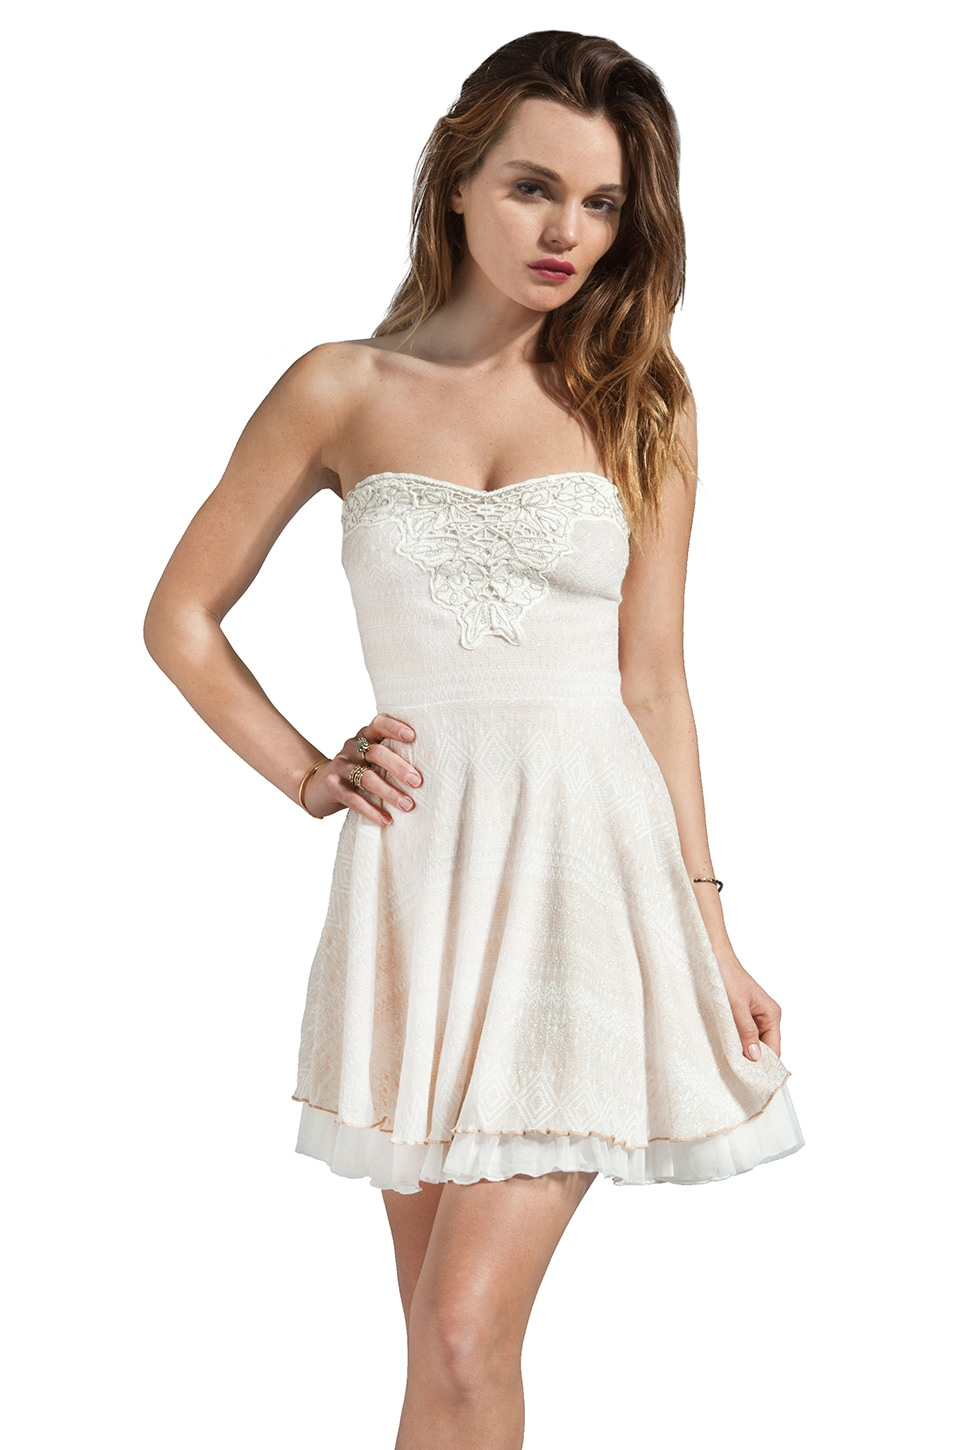 Free People Twinkle & Twirl Dress in Ice Combo